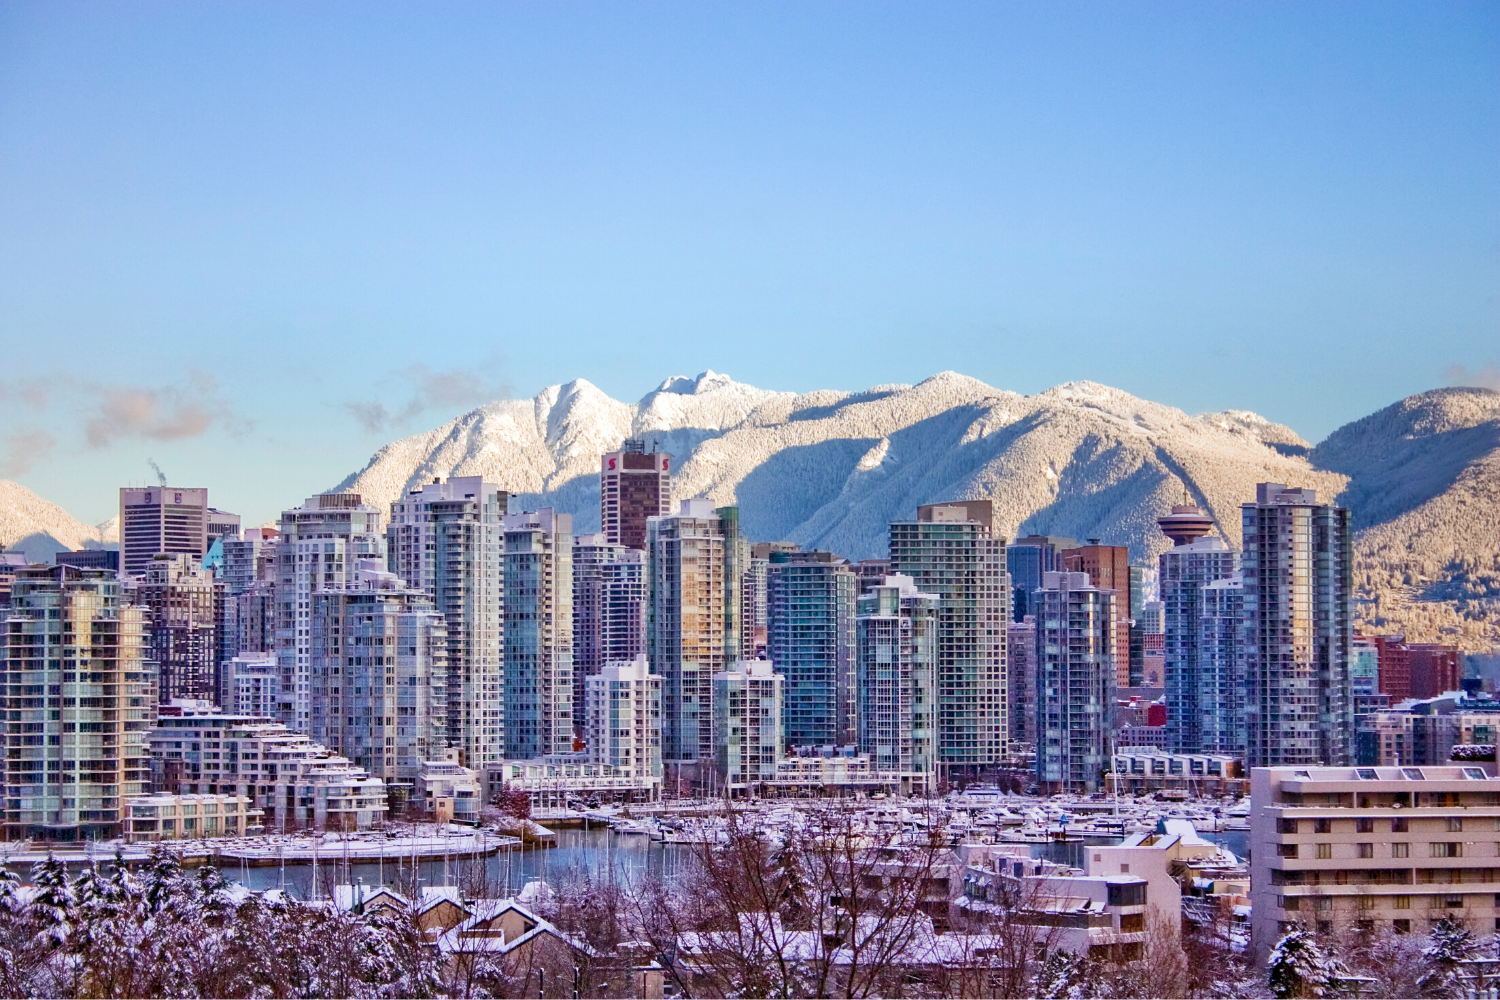 Snowy rooftops and False Creek looking north towards Vancouver's downtown skyline with snow filled mountains.